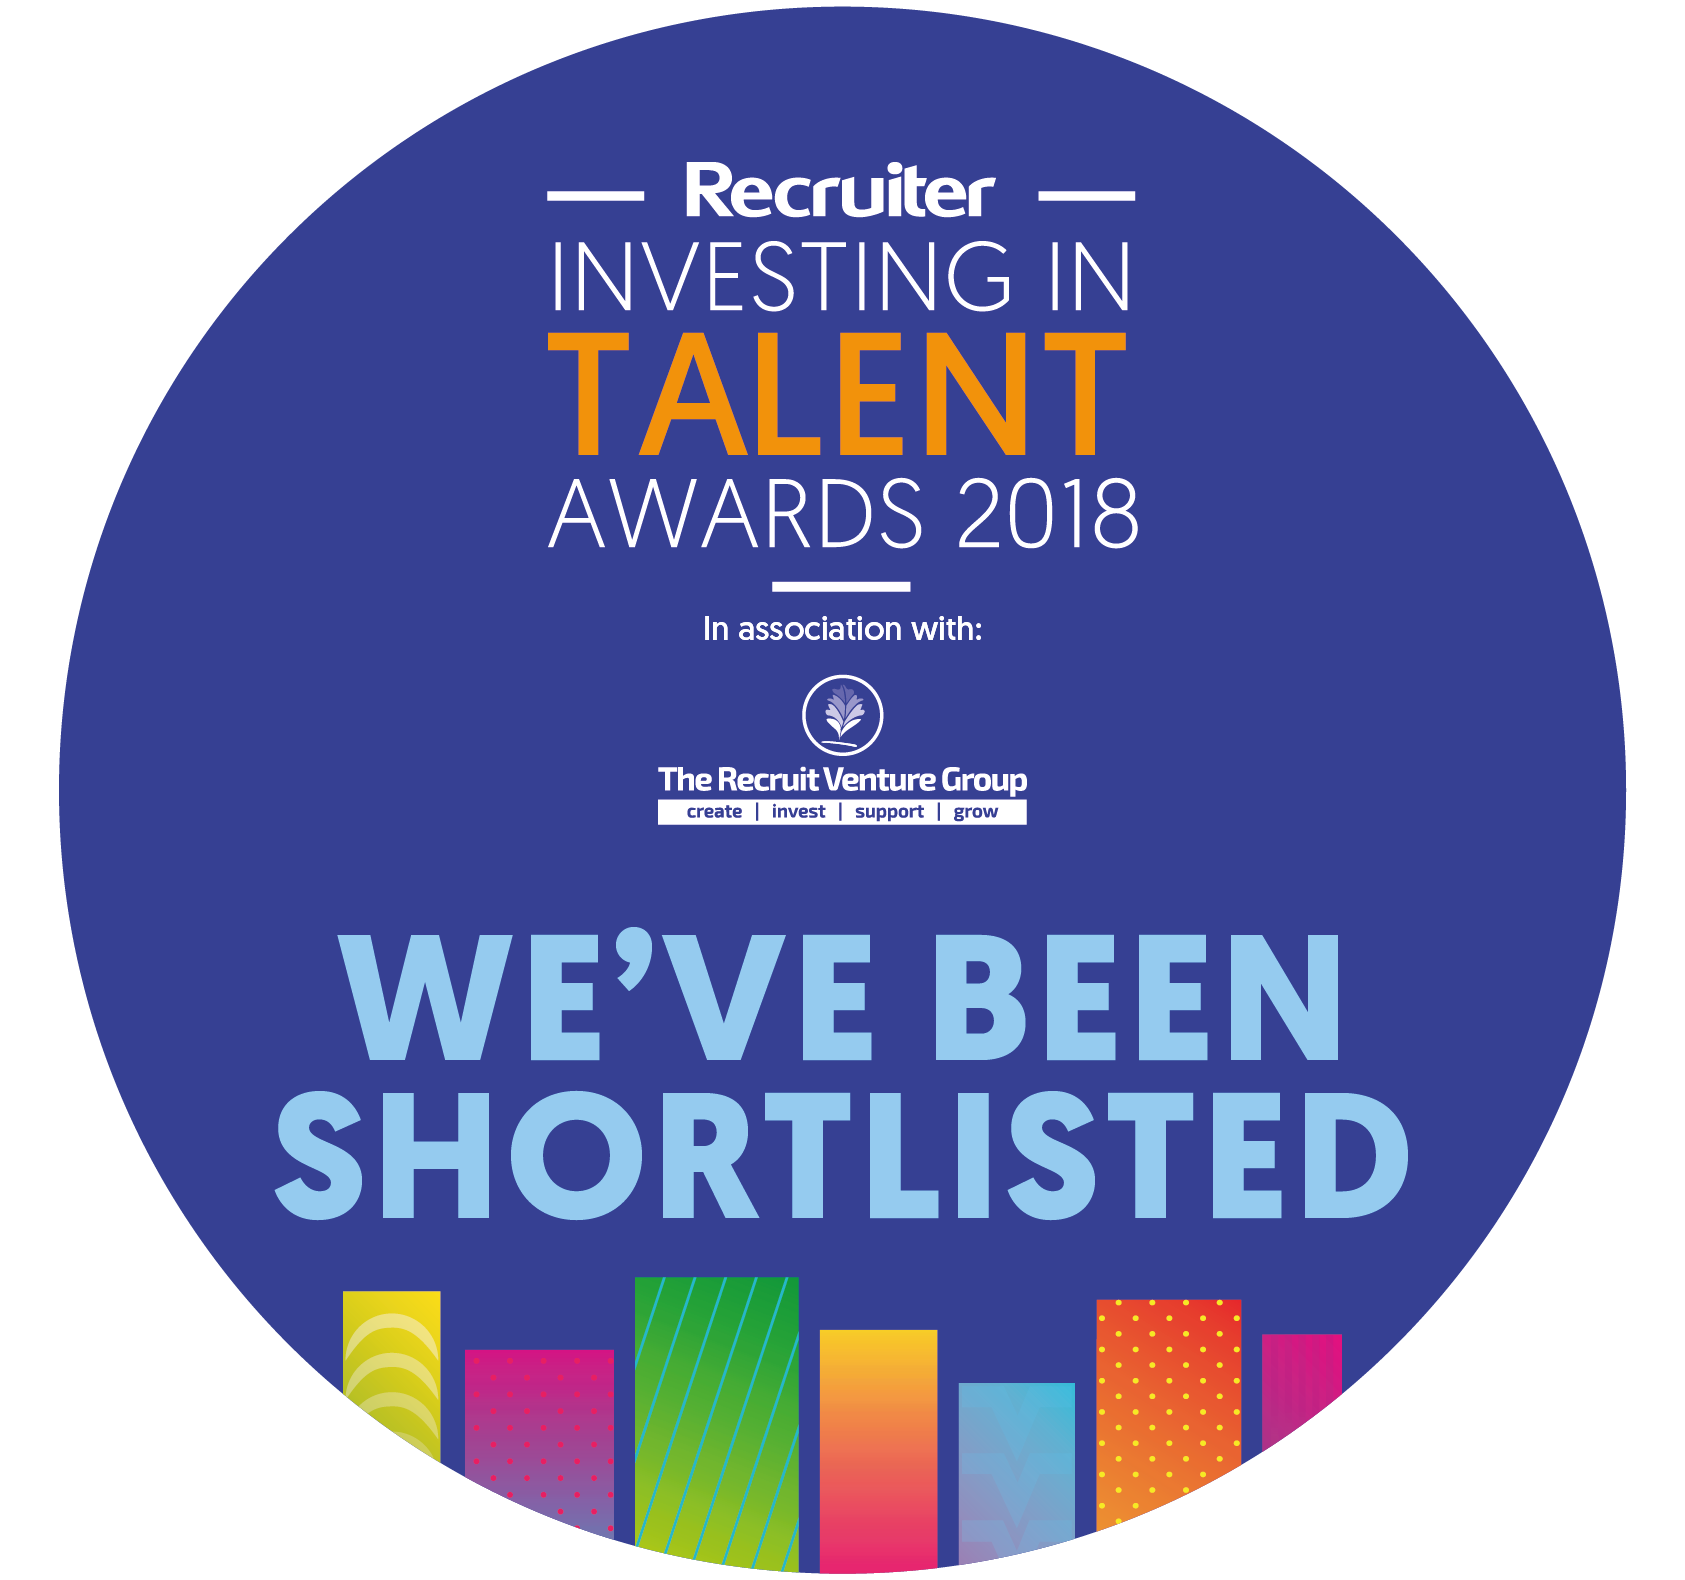 2018 - Shortlisted for best pay and benefits strategy